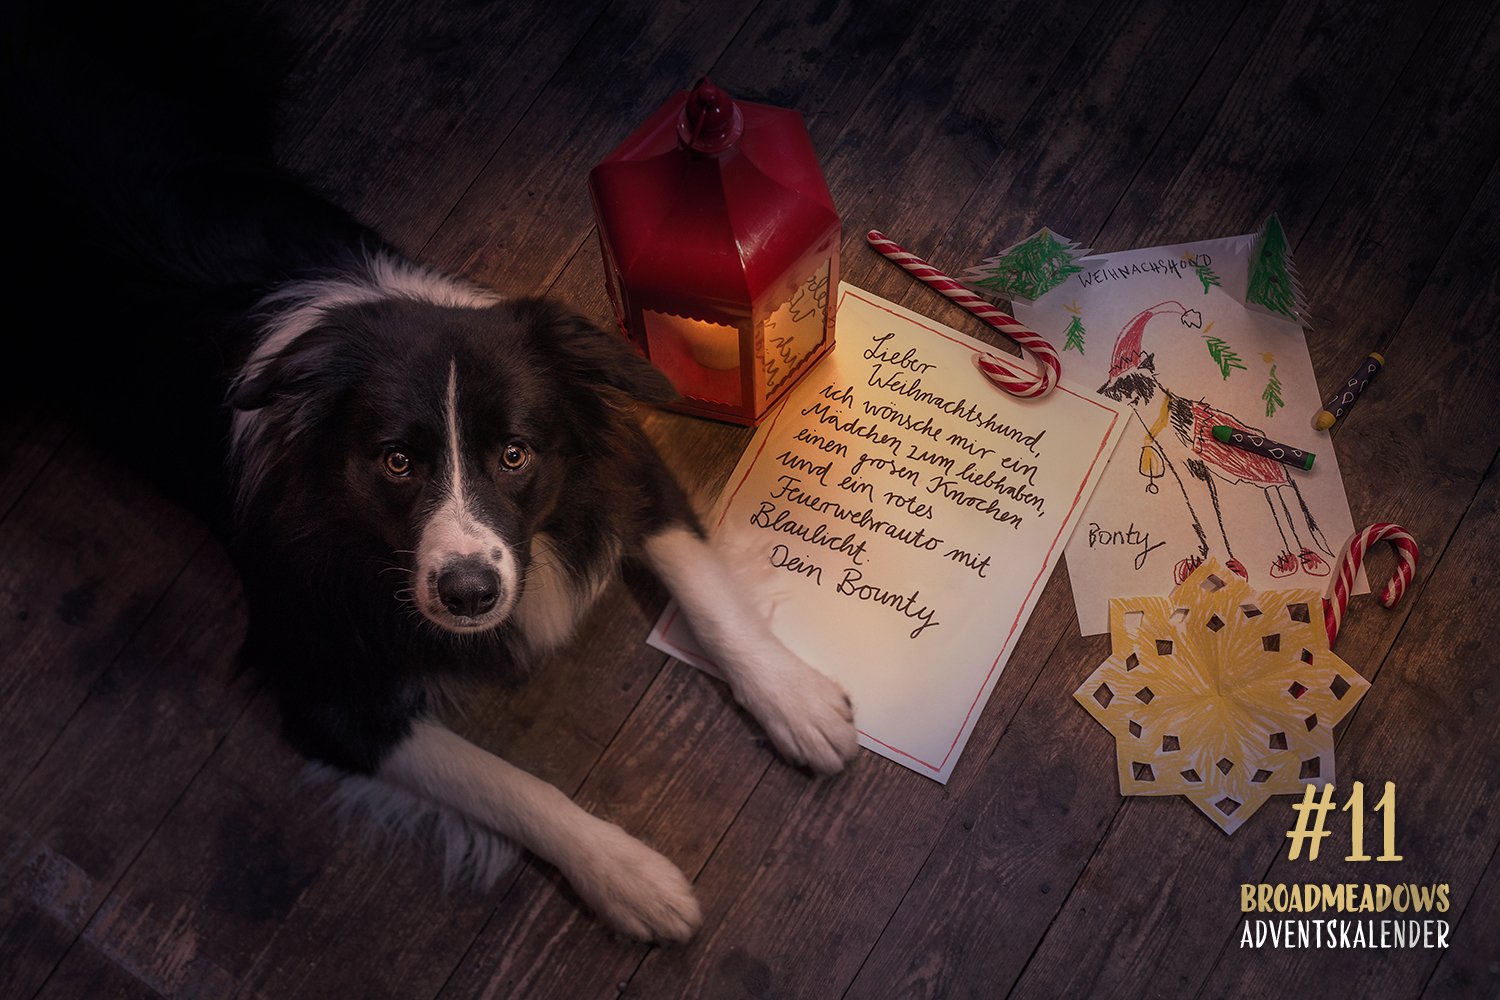 Broadmeadows Border Collies Adventskalender – No. 11: »Bounty« (Broadmeadows Dressed for Success)